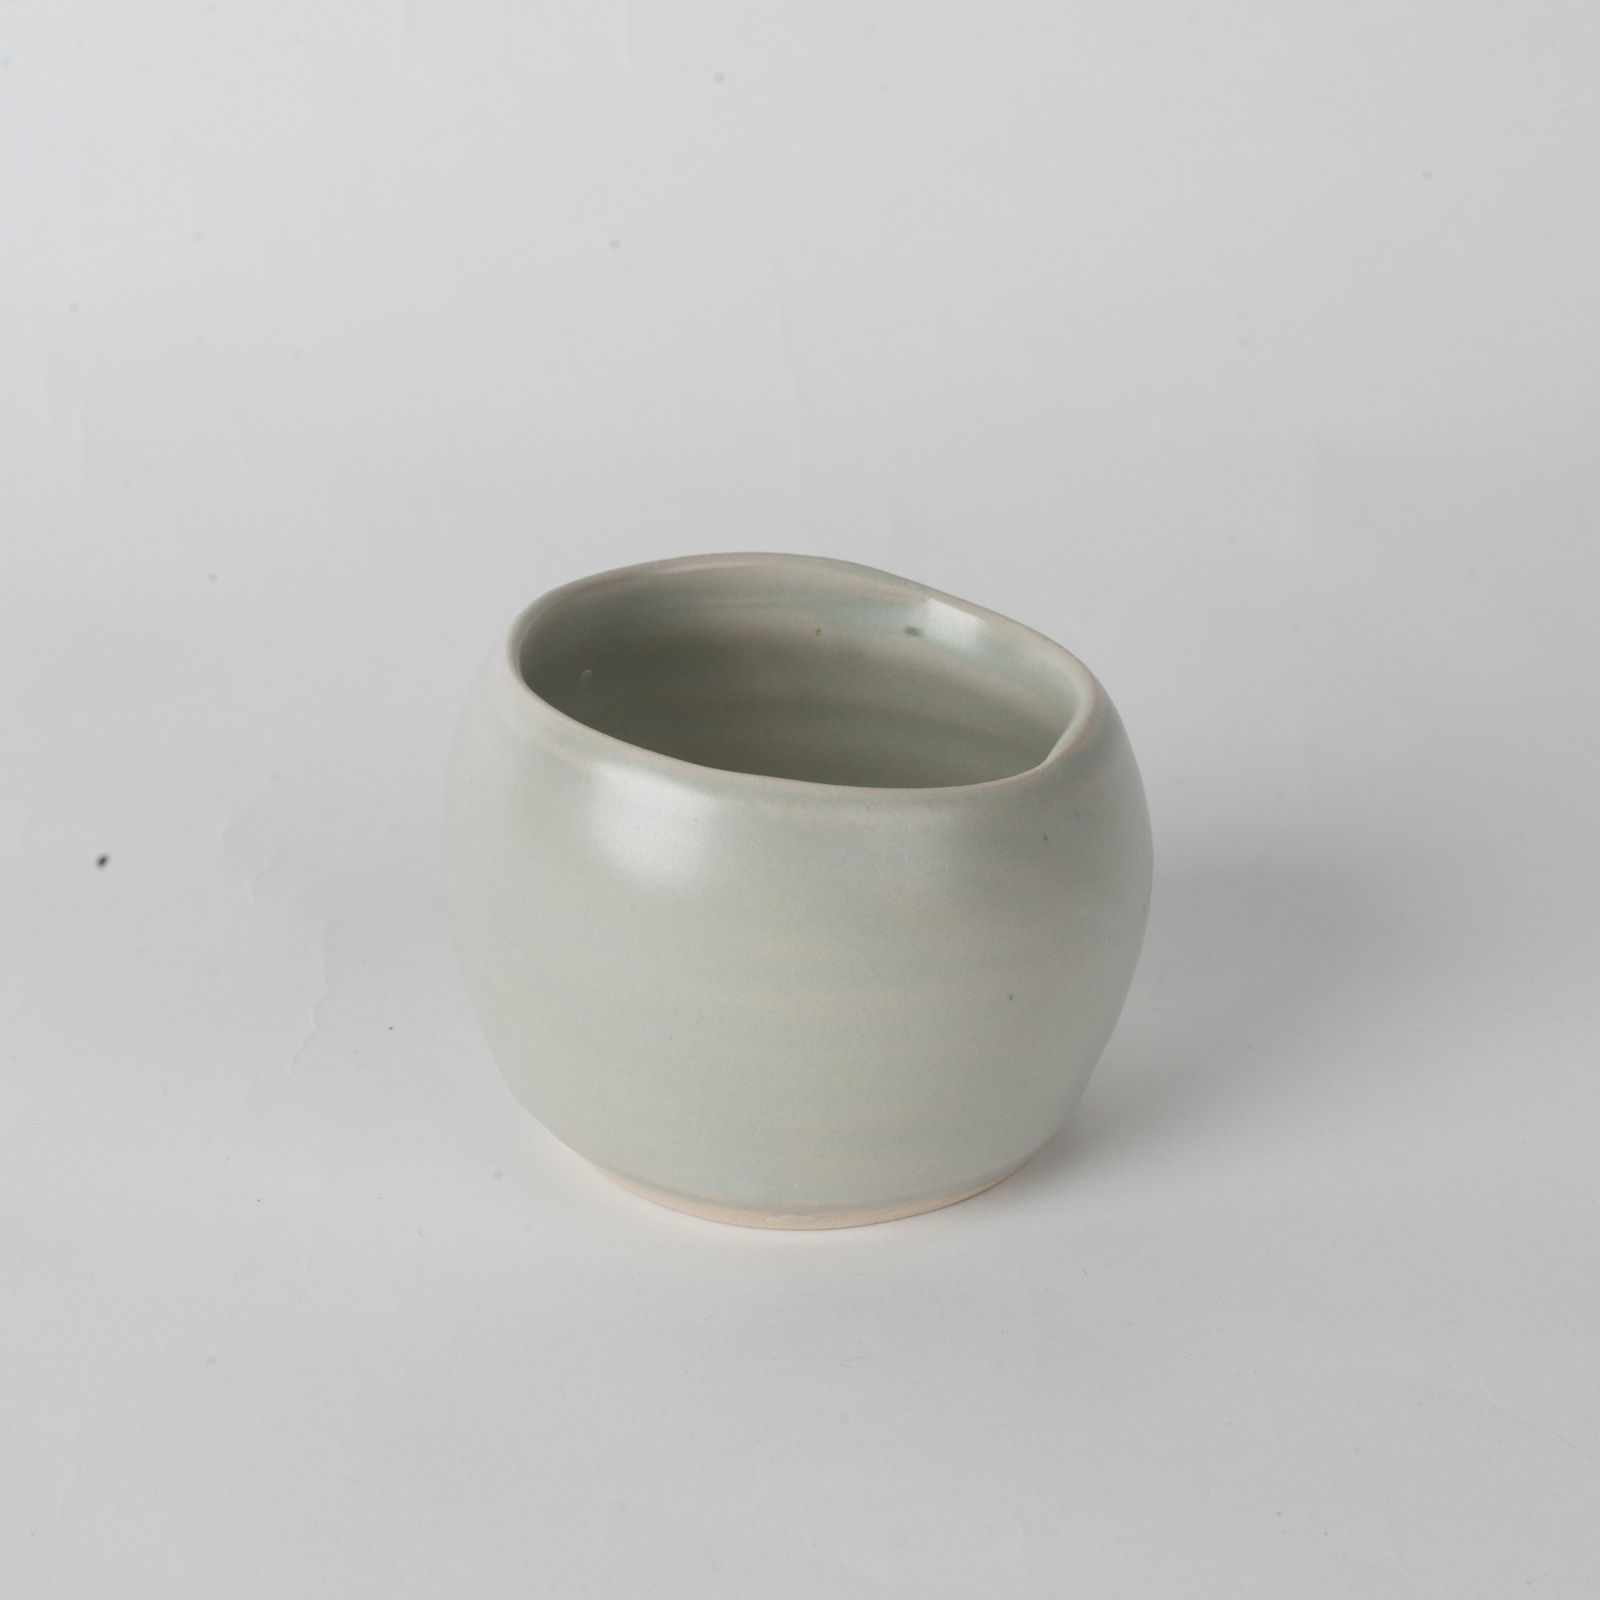 Whiskey Cup In Stone Ceramic By James Lemon 02